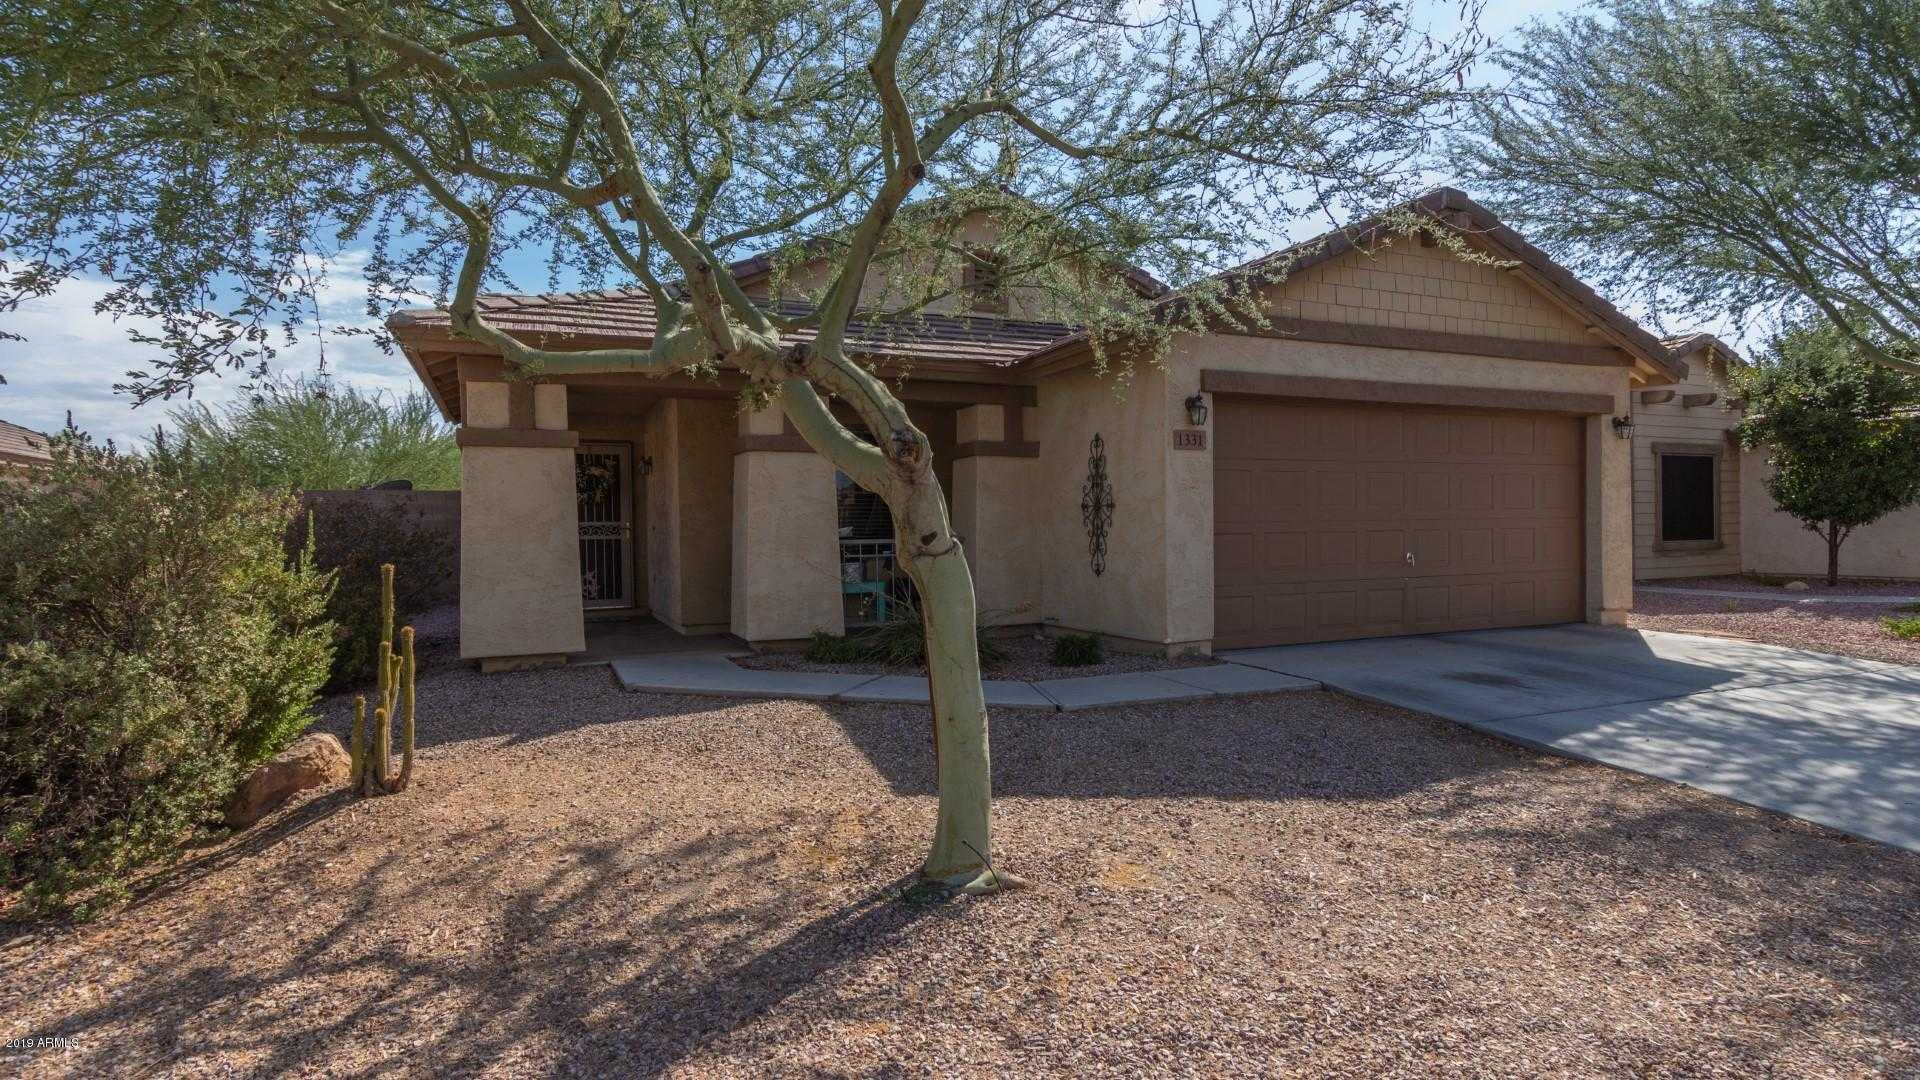 $200,000 - 3Br/2Ba - Home for Sale in Ironwood Commons, Casa Grande